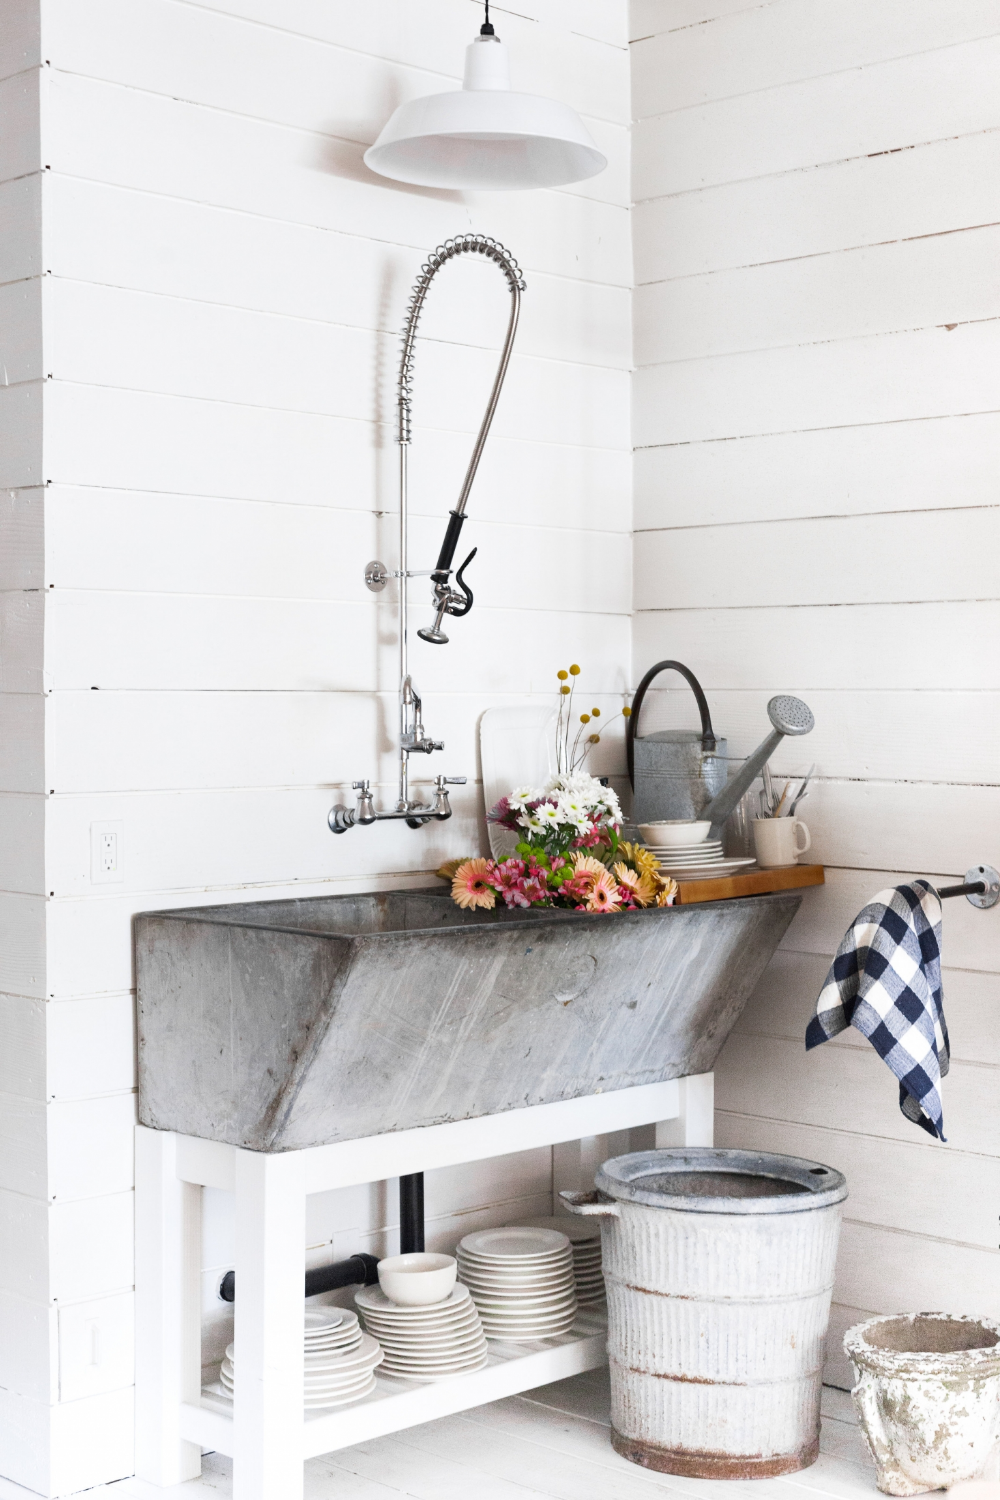 Trending on Remodelista 5 New Design Tips from the West